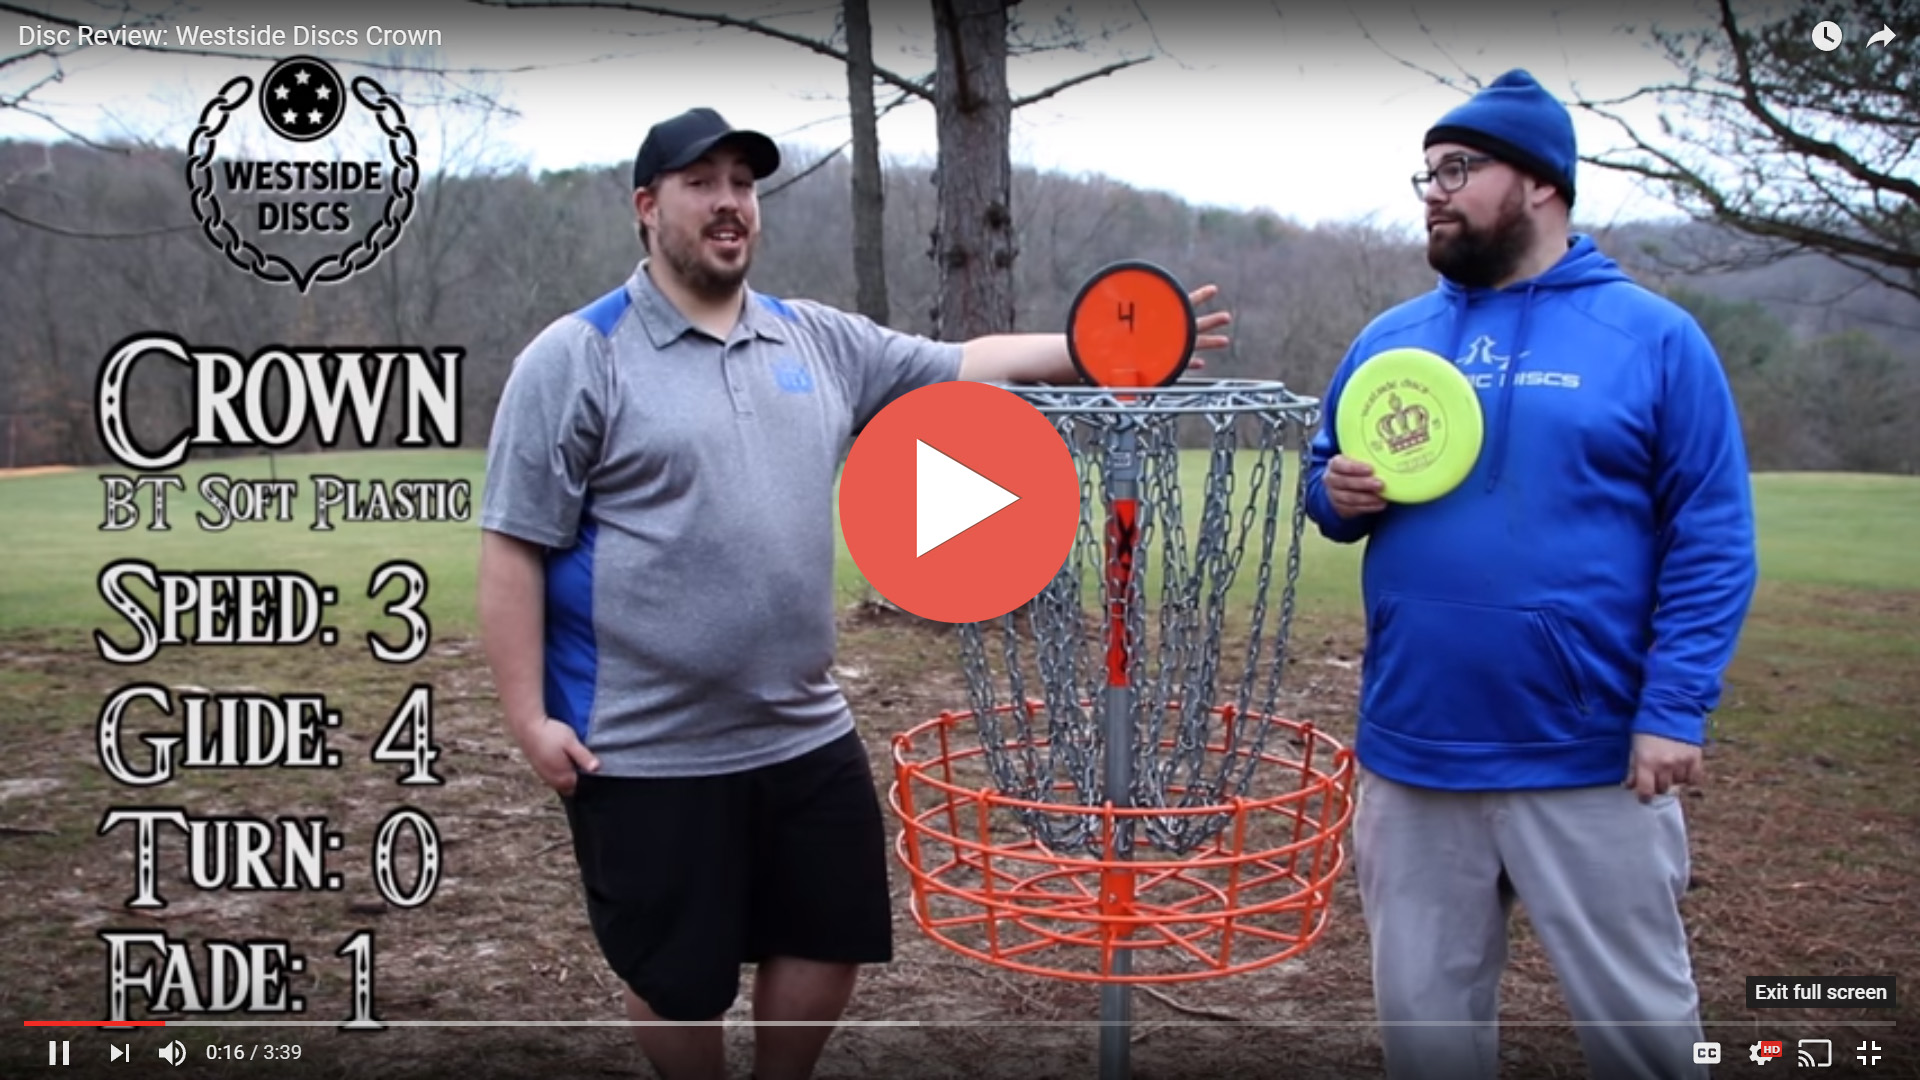 Westside Discs Crown Disc Review